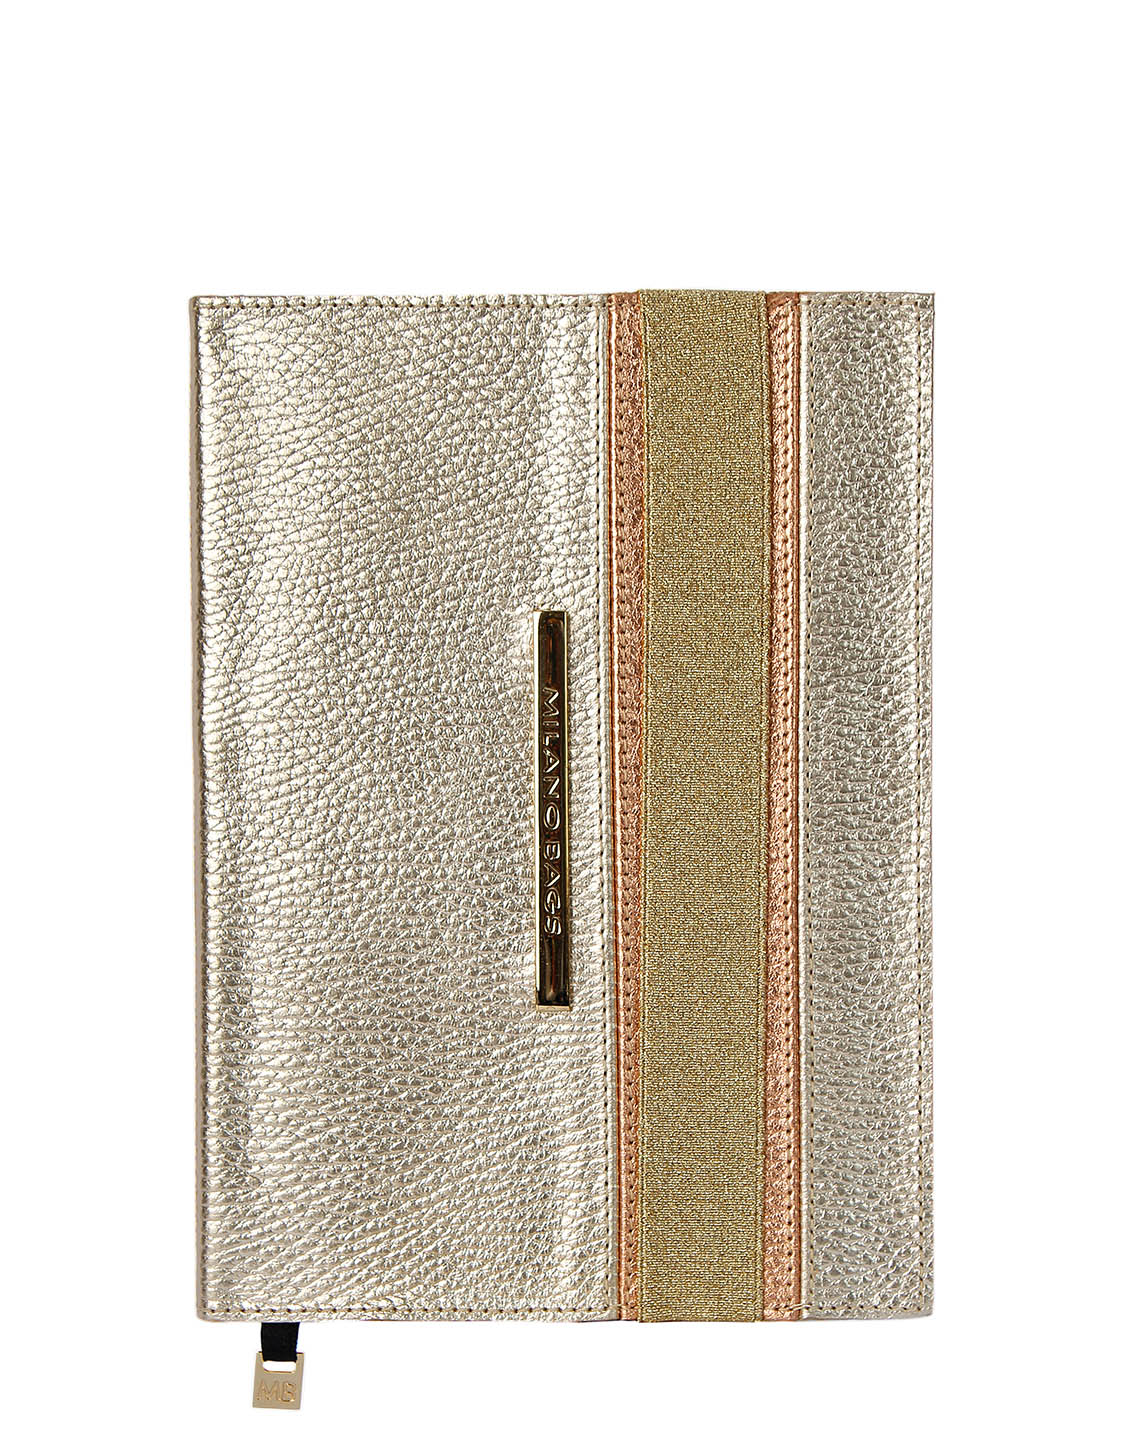 Agenda AG-104 Color Oro